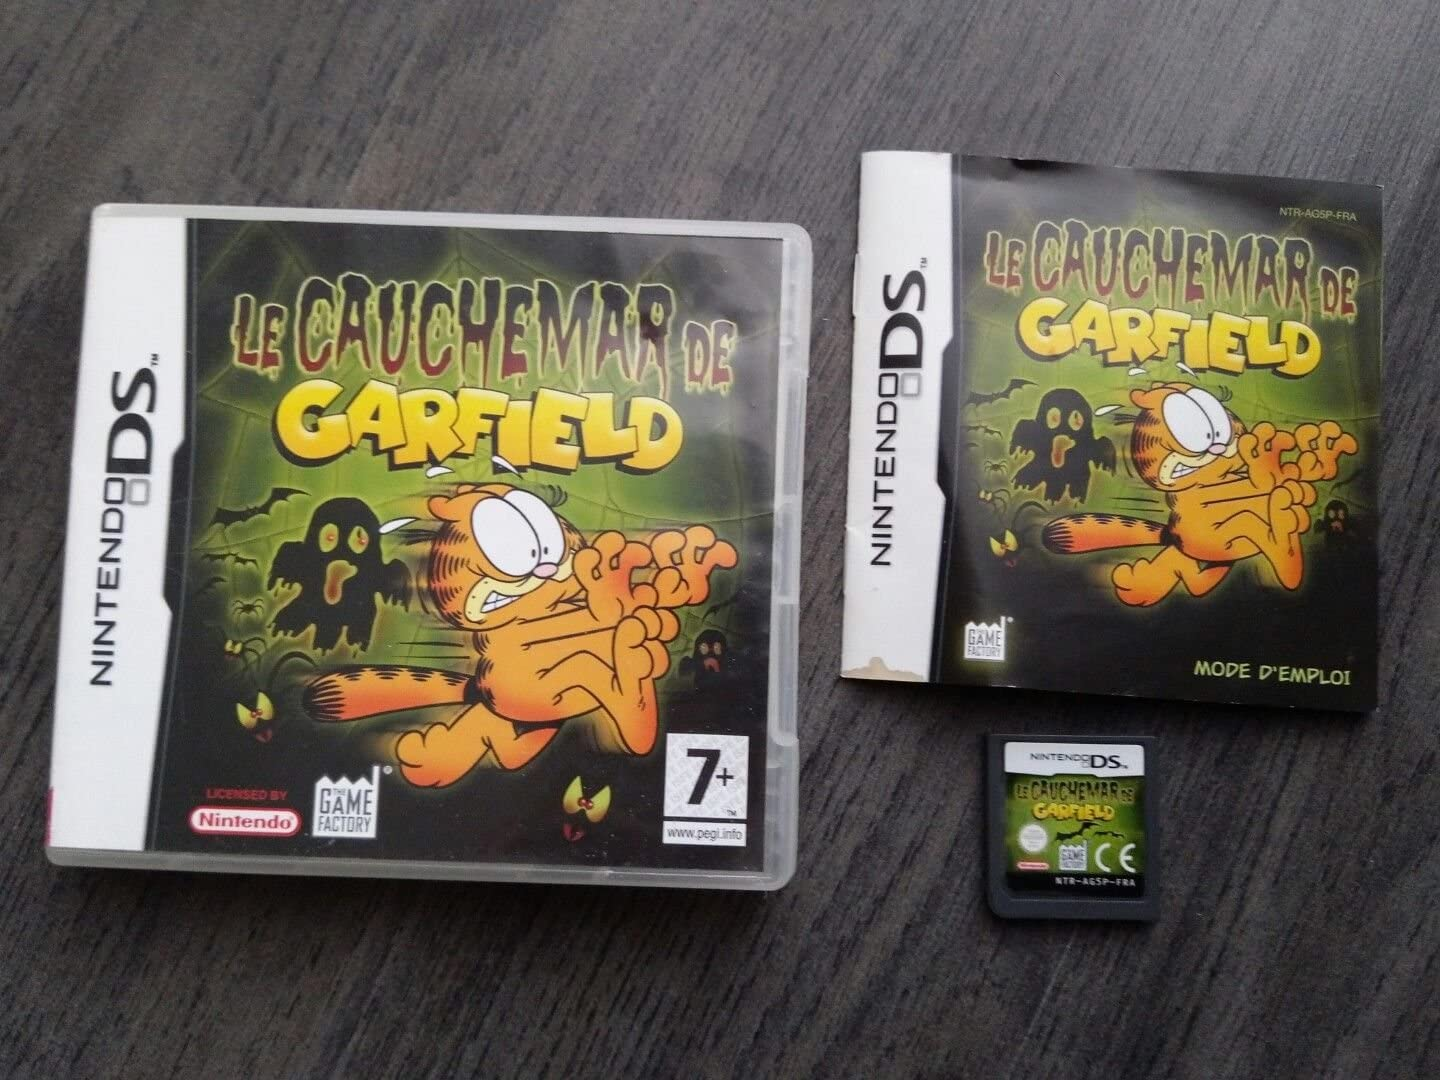 Garfield Nightmare Nintendo Ds By American Game Factory Nintendo Ds Computer And Video Games Amazon Ca